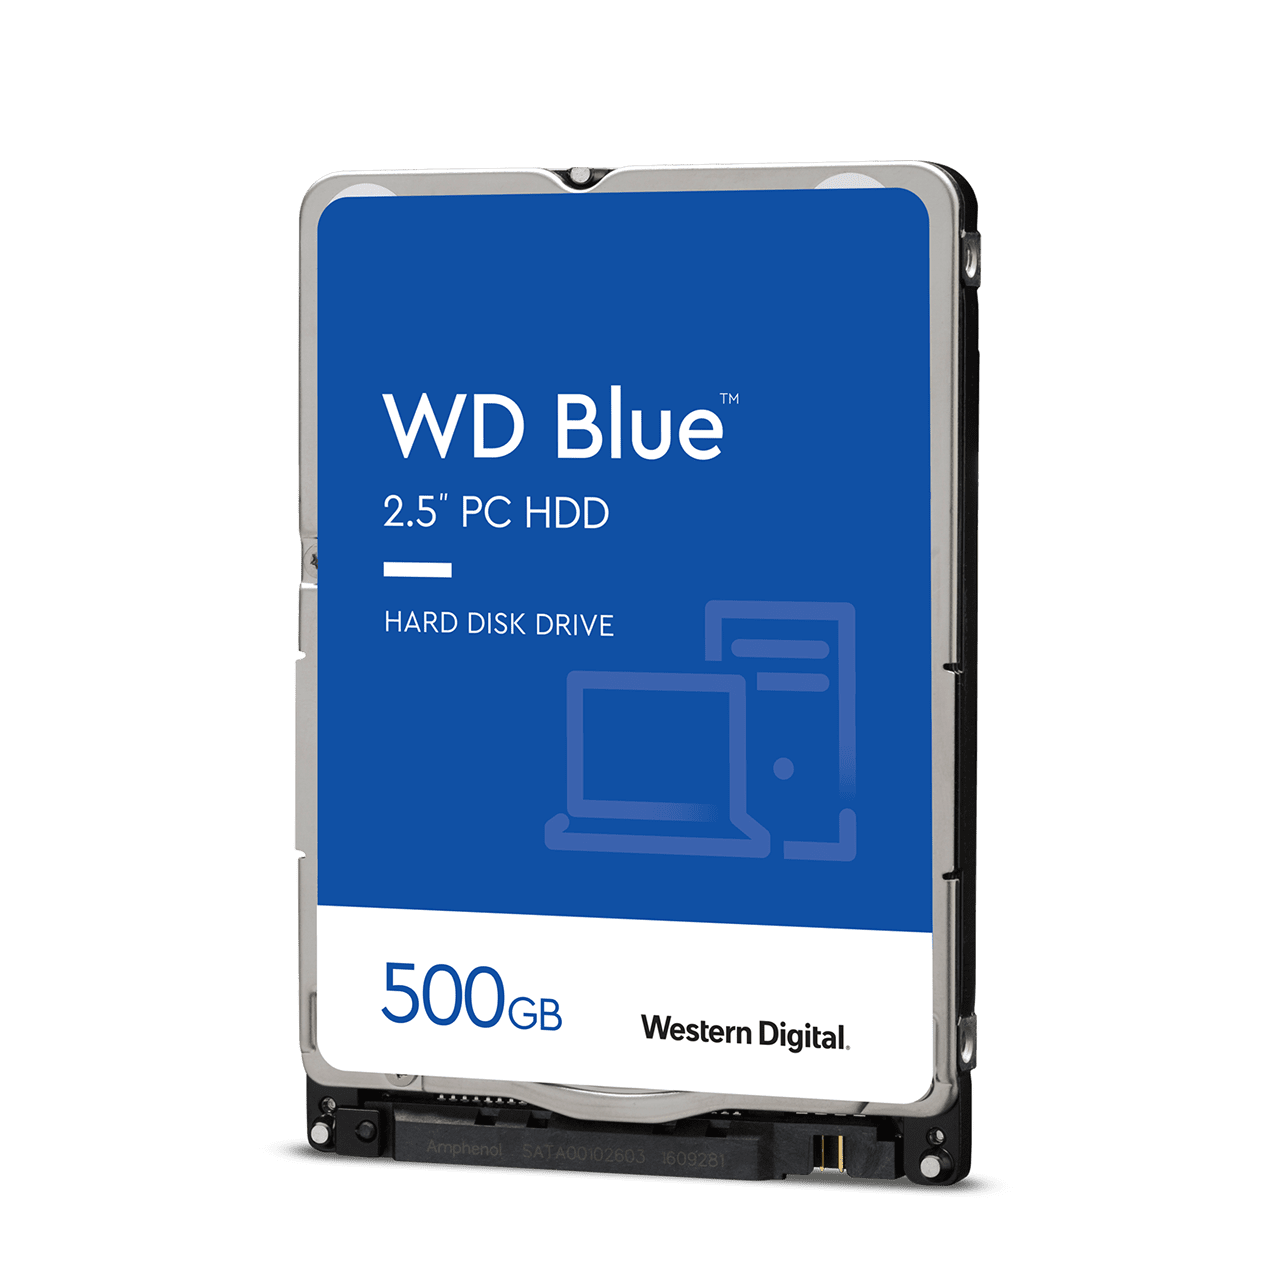 WD Blue™ 500GB PC Hard Drive - Image2